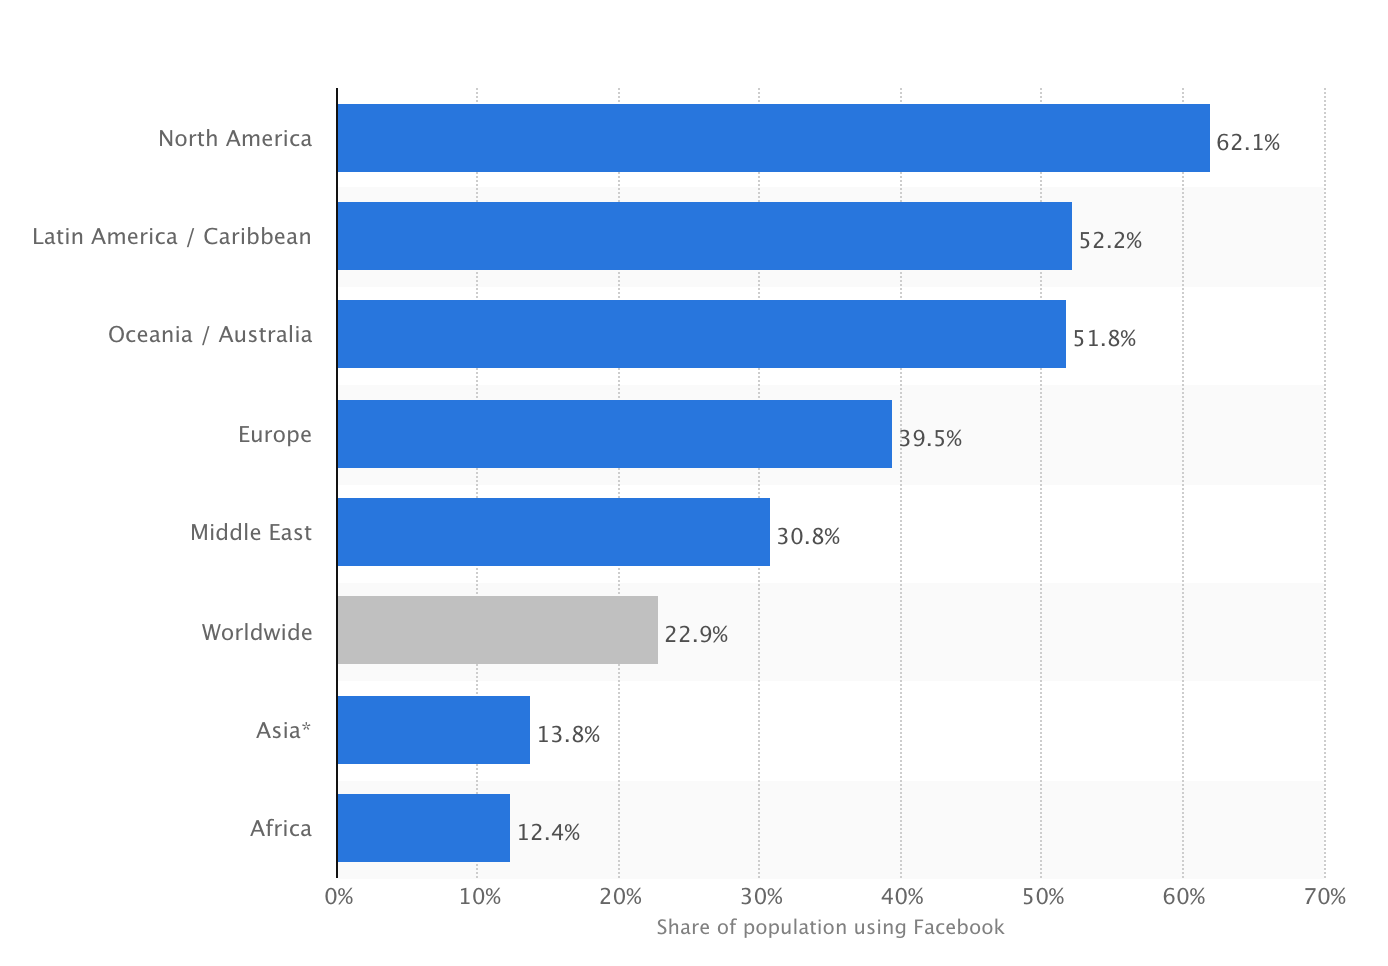 62% of the U.S. population uses Facebook.